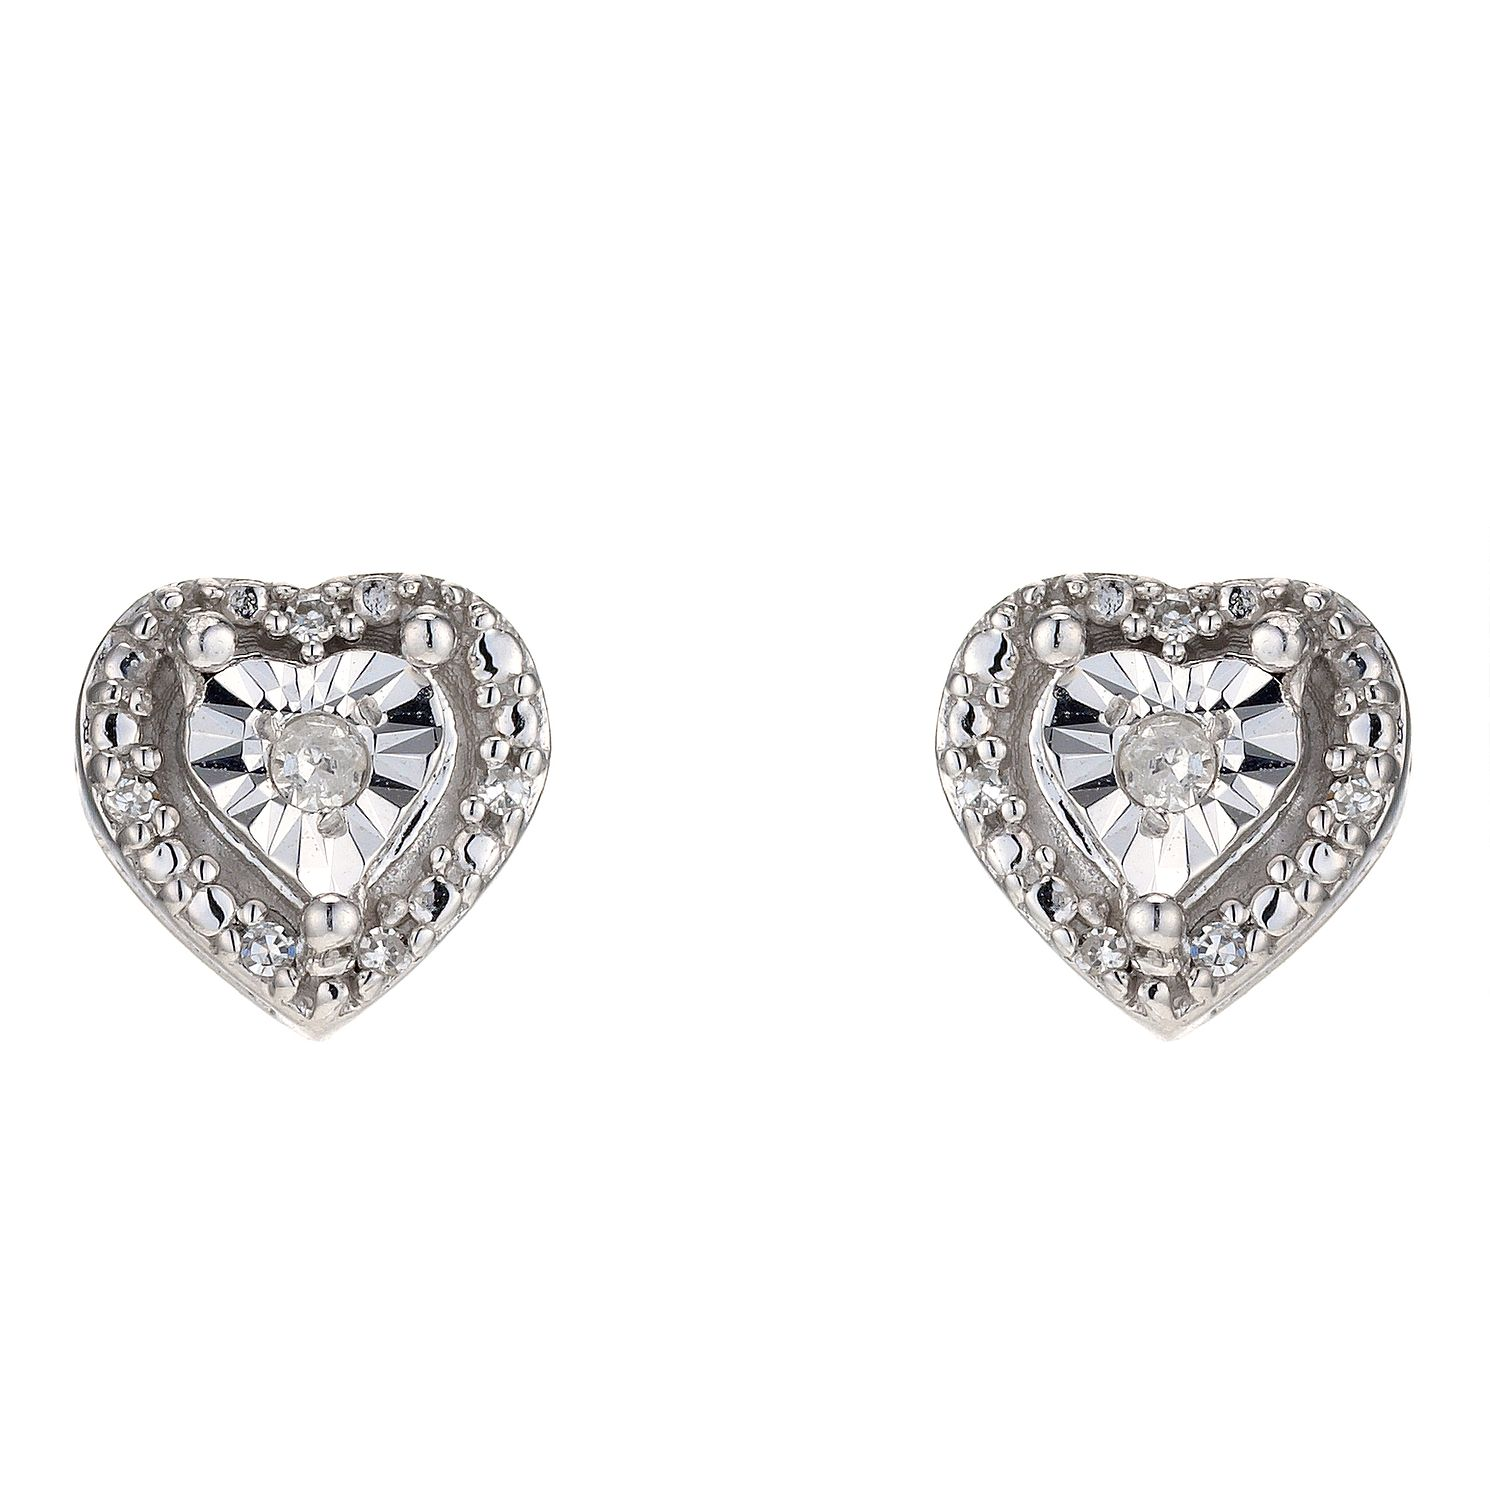 diamond earrings platinum rectangular stud shape fancy shield